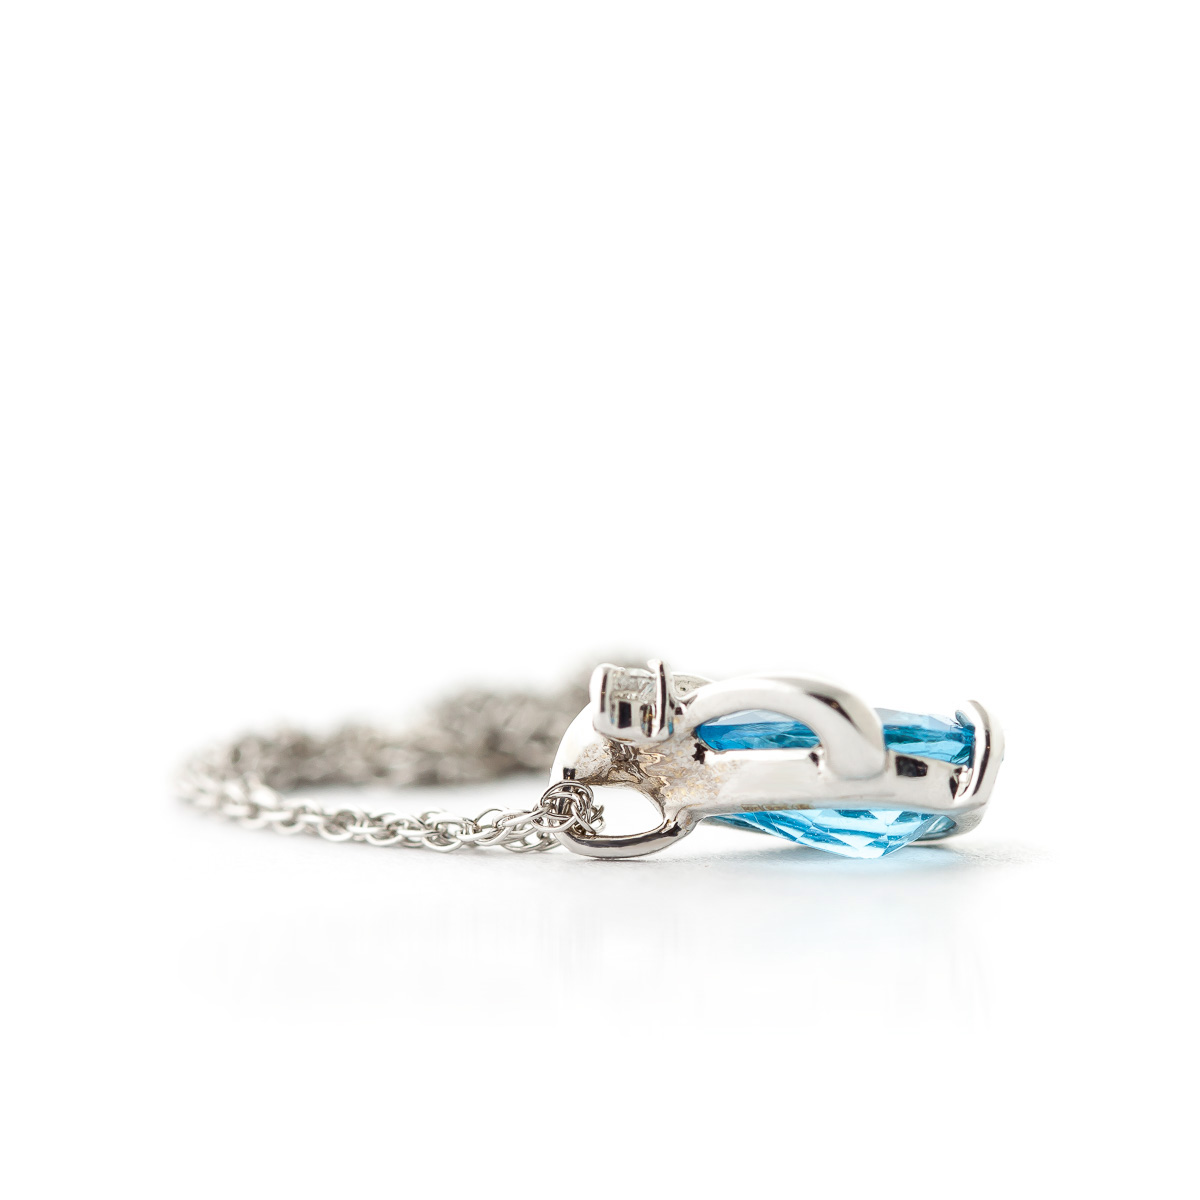 Blue Topaz and Diamond Pendant Necklace 2.5ct in 9ct White Gold